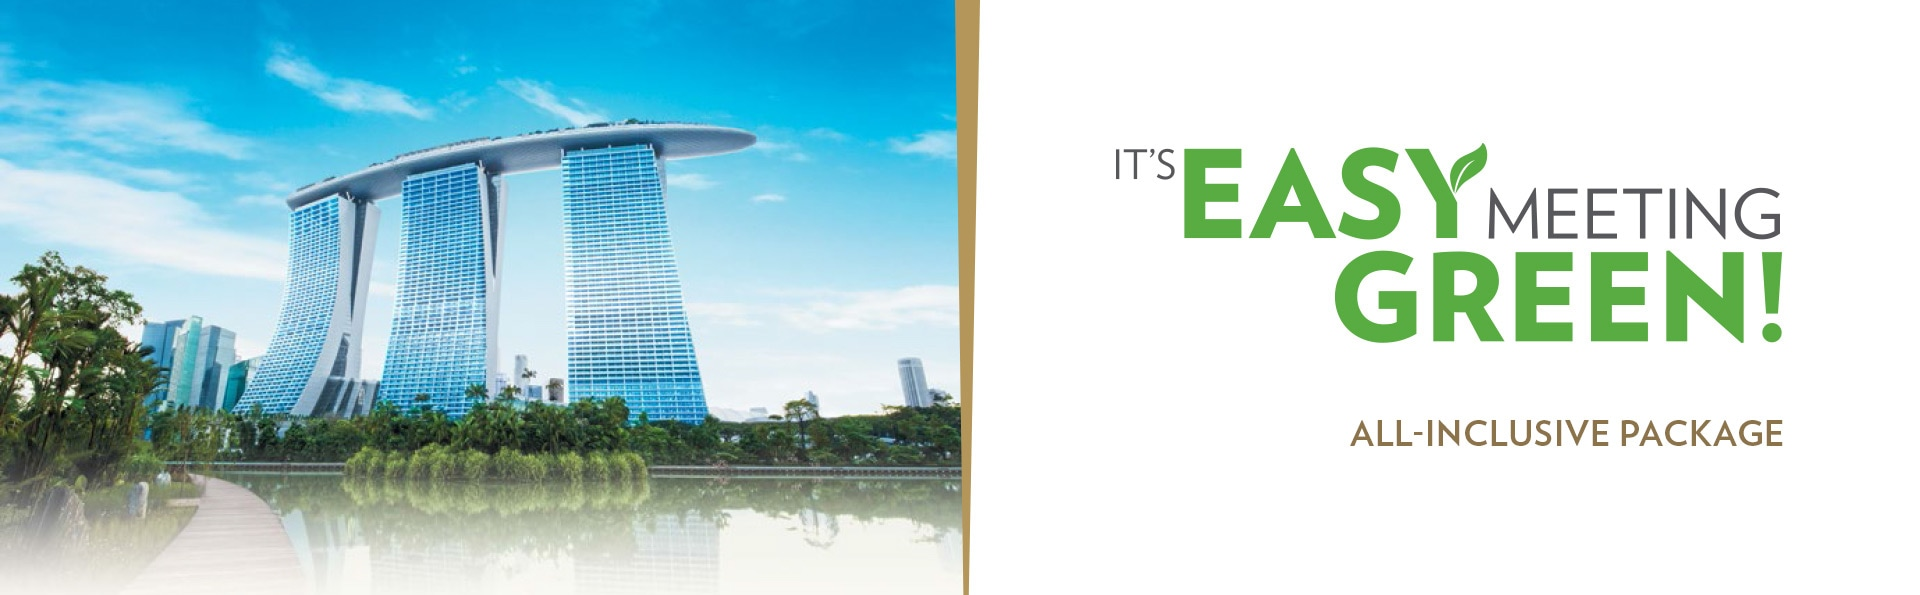 Green Meeting Packages in Marina Bay Sands